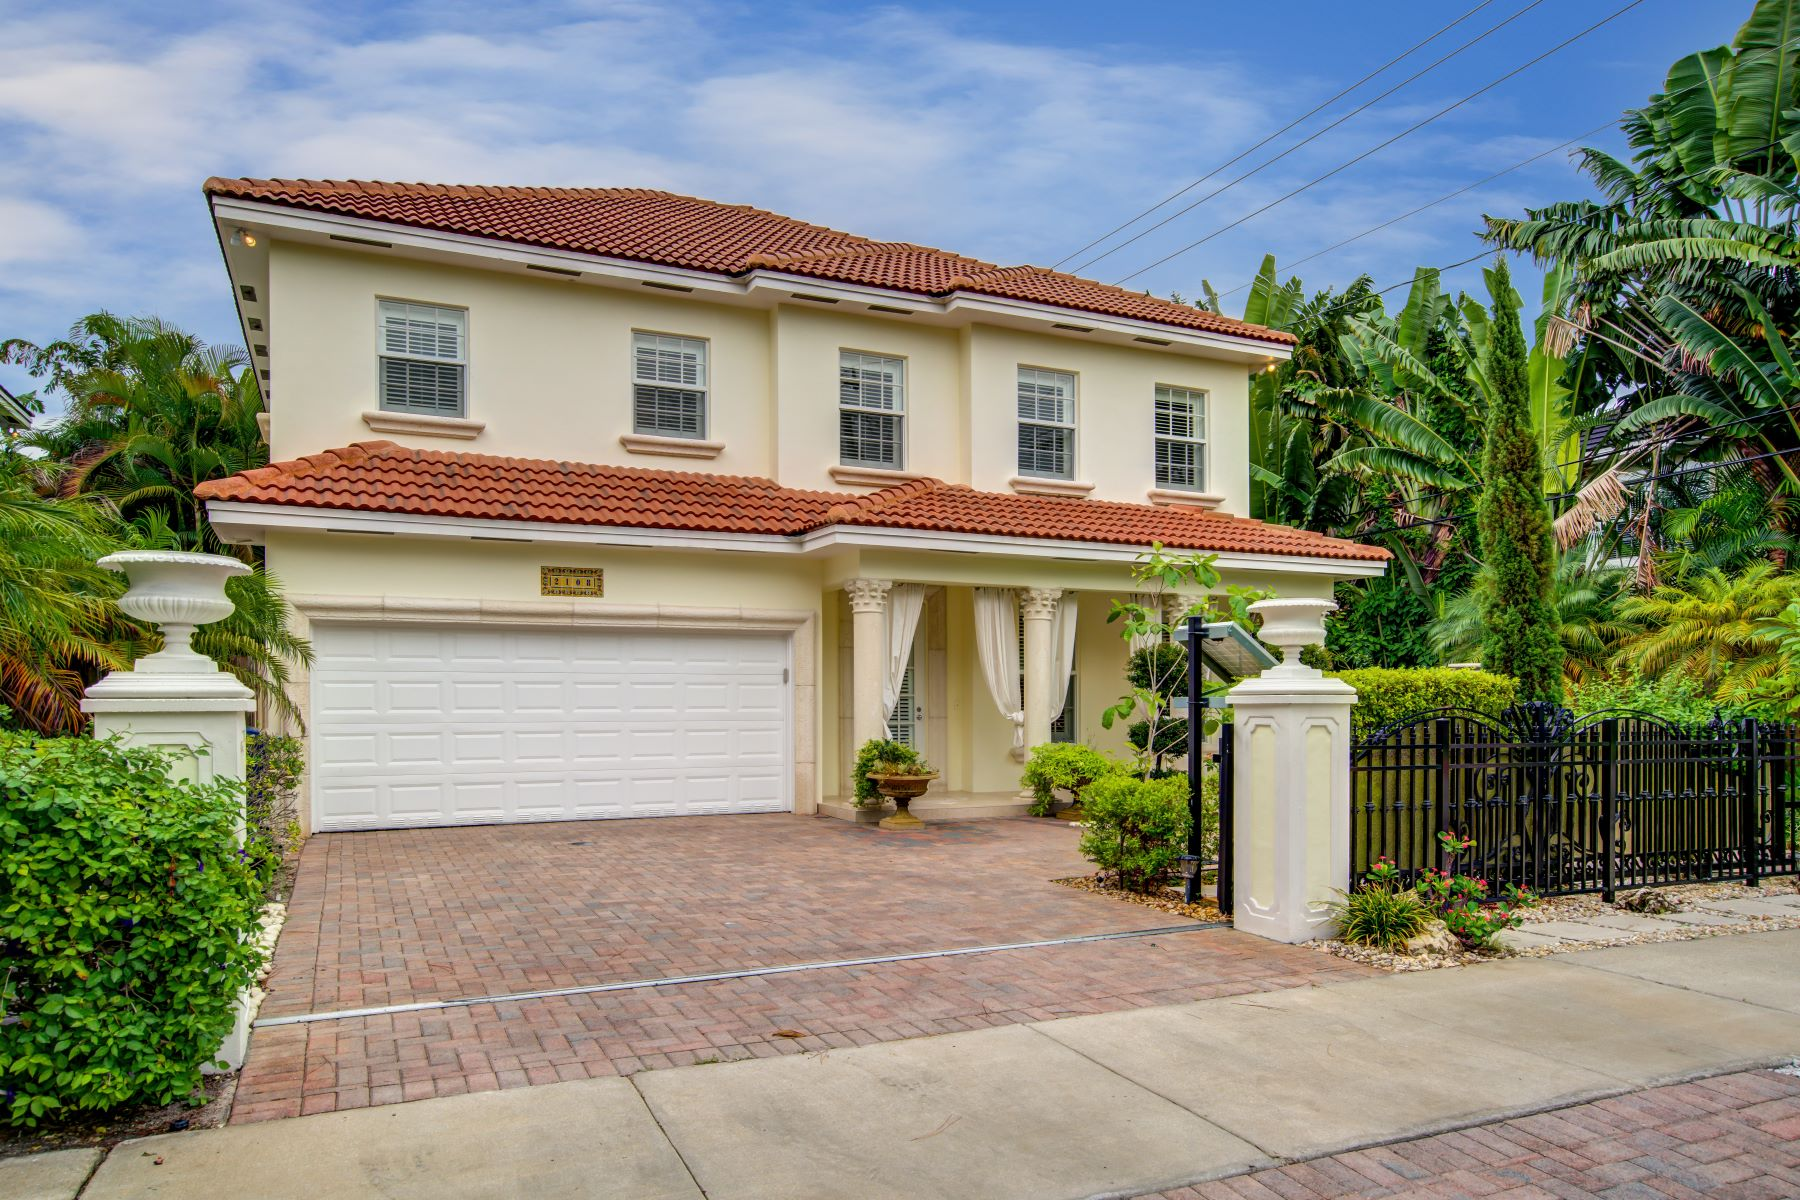 Single Family Home for Sale at 2108 Ne 1st Ave Wilton Manors, Florida 33305 United States